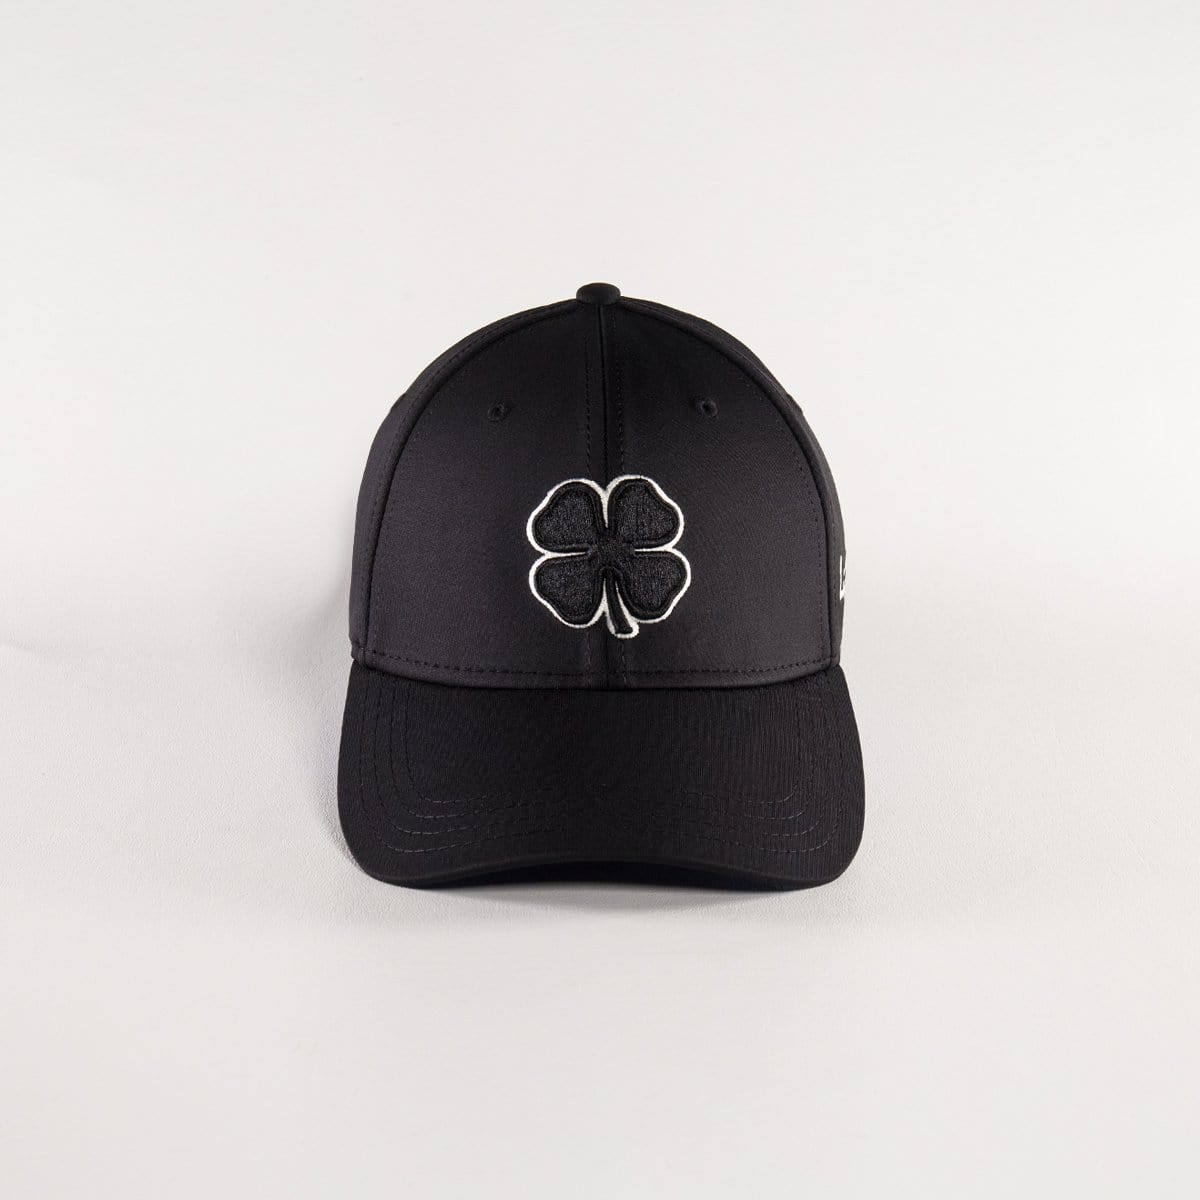 Black Clover Baseball Caps Premium Clover 2 equestrian team apparel online tack store mobile tack store custom farm apparel custom show stable clothing equestrian lifestyle horse show clothing riding clothes horses equestrian tack store